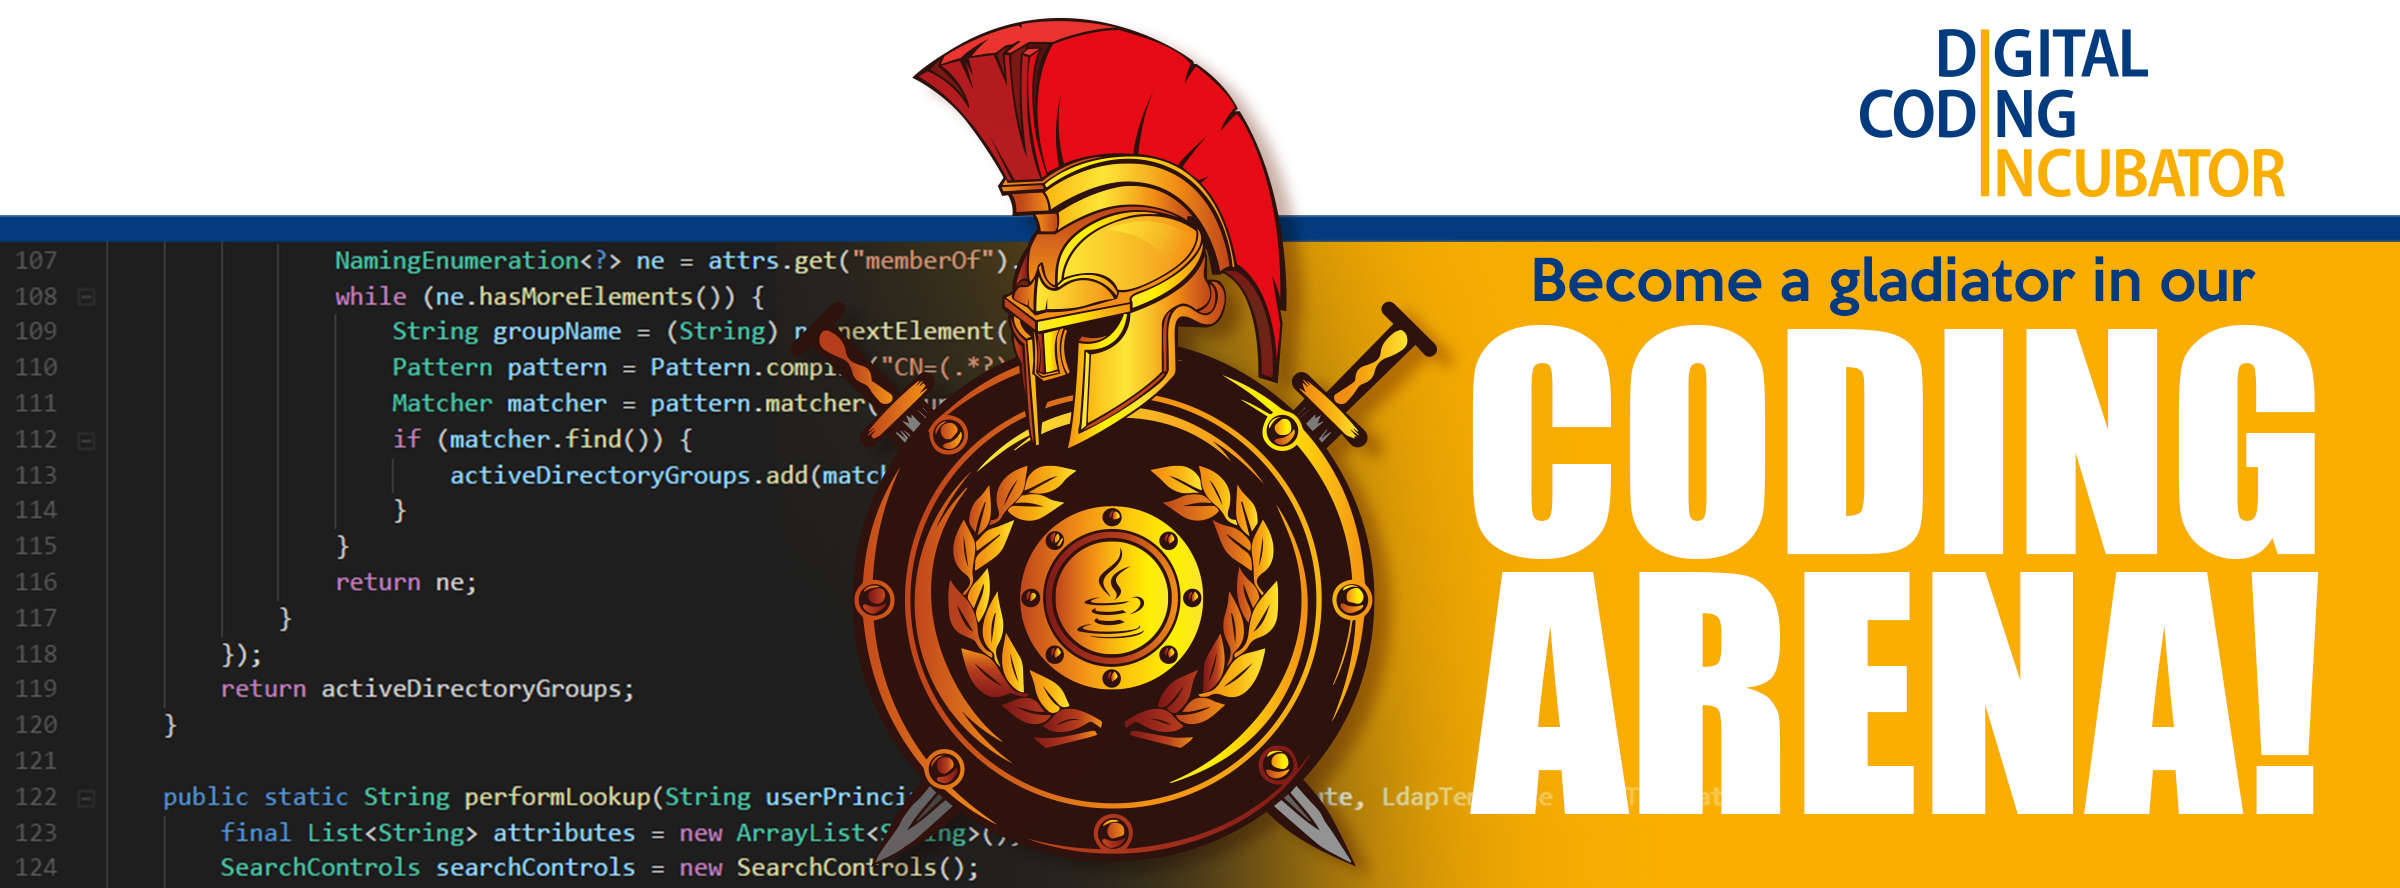 Become a Gladiator in our Coding Arena - Digital Coding Incubator